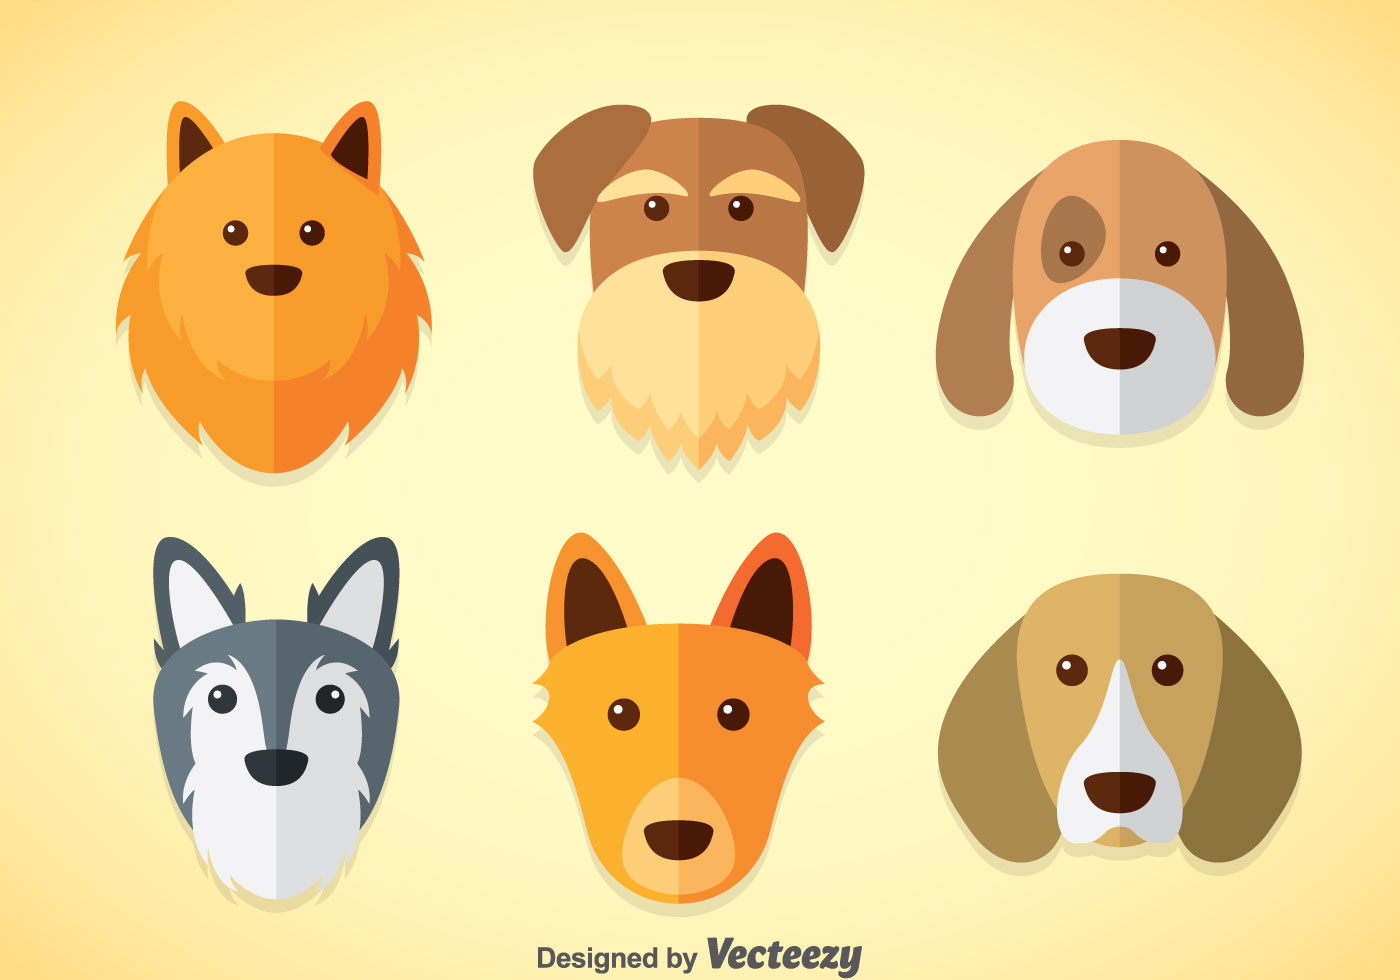 Cute Fluffy Dogs Wallpaper Dogs Vector Sets Download Free Vector Art Stock